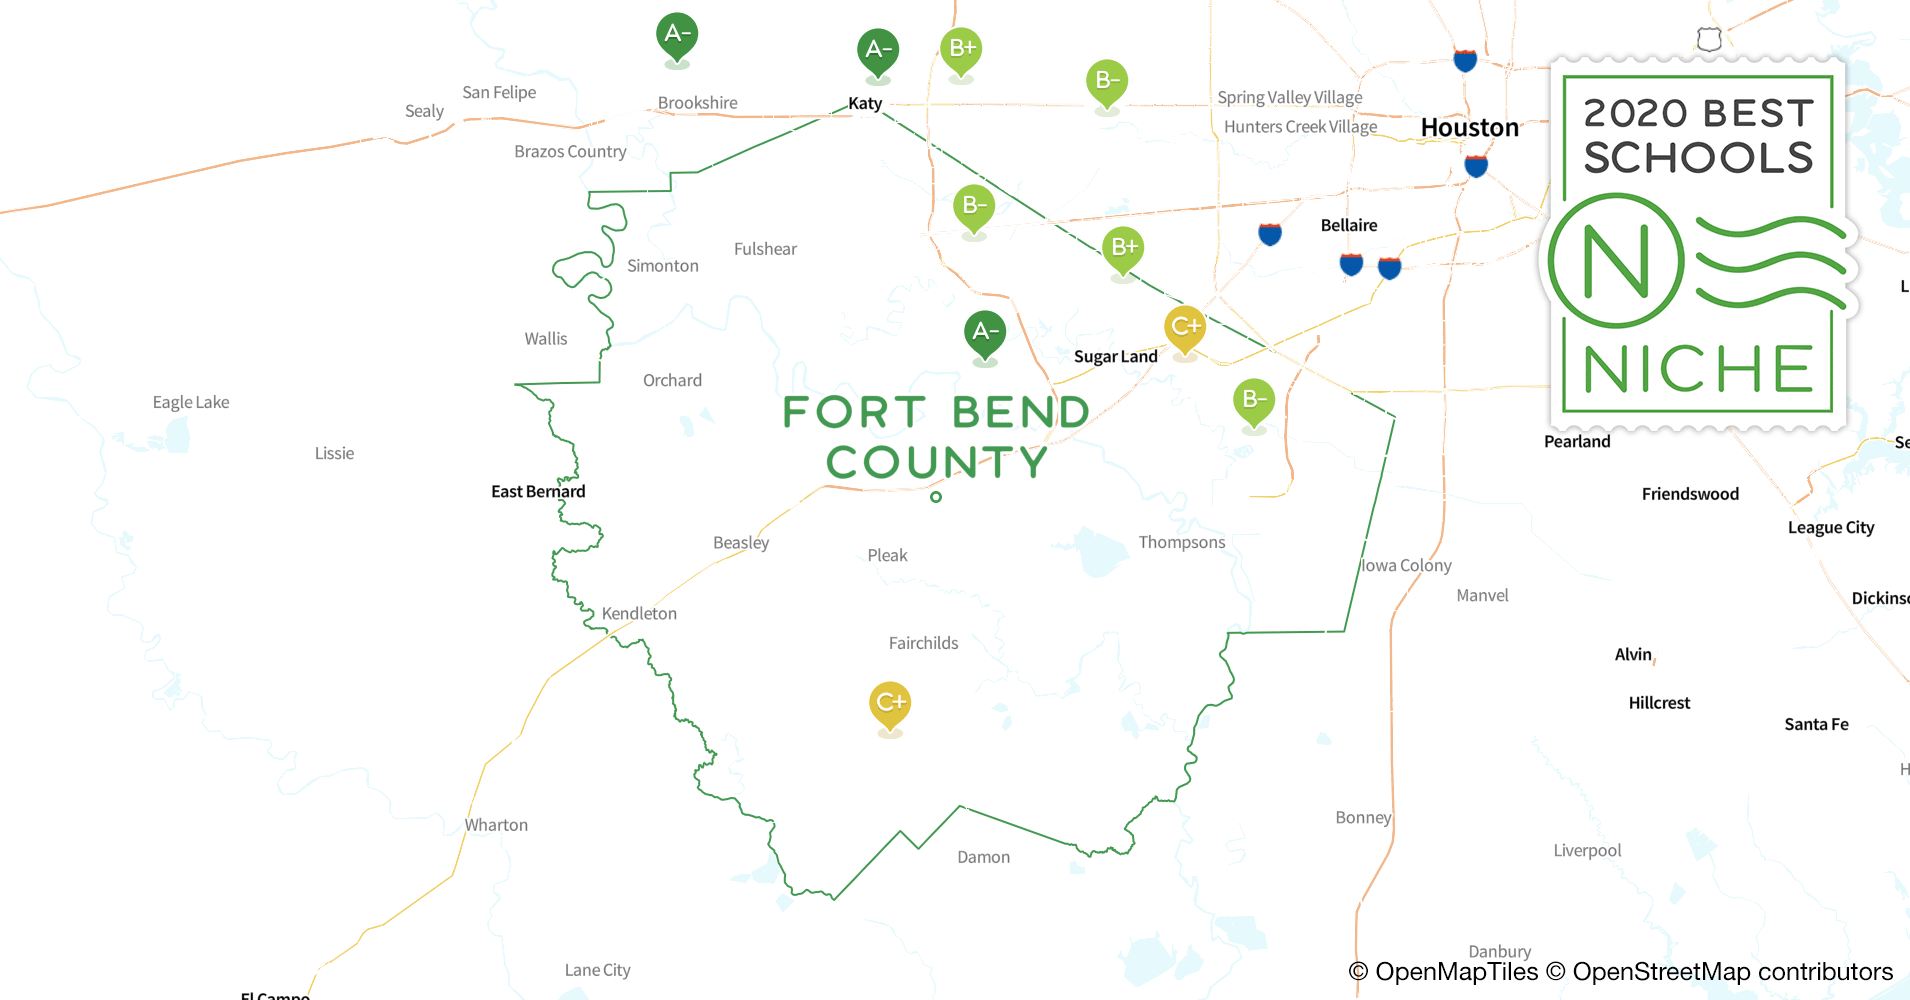 2020 Best High Schools in Fort Bend County, TX - Niche